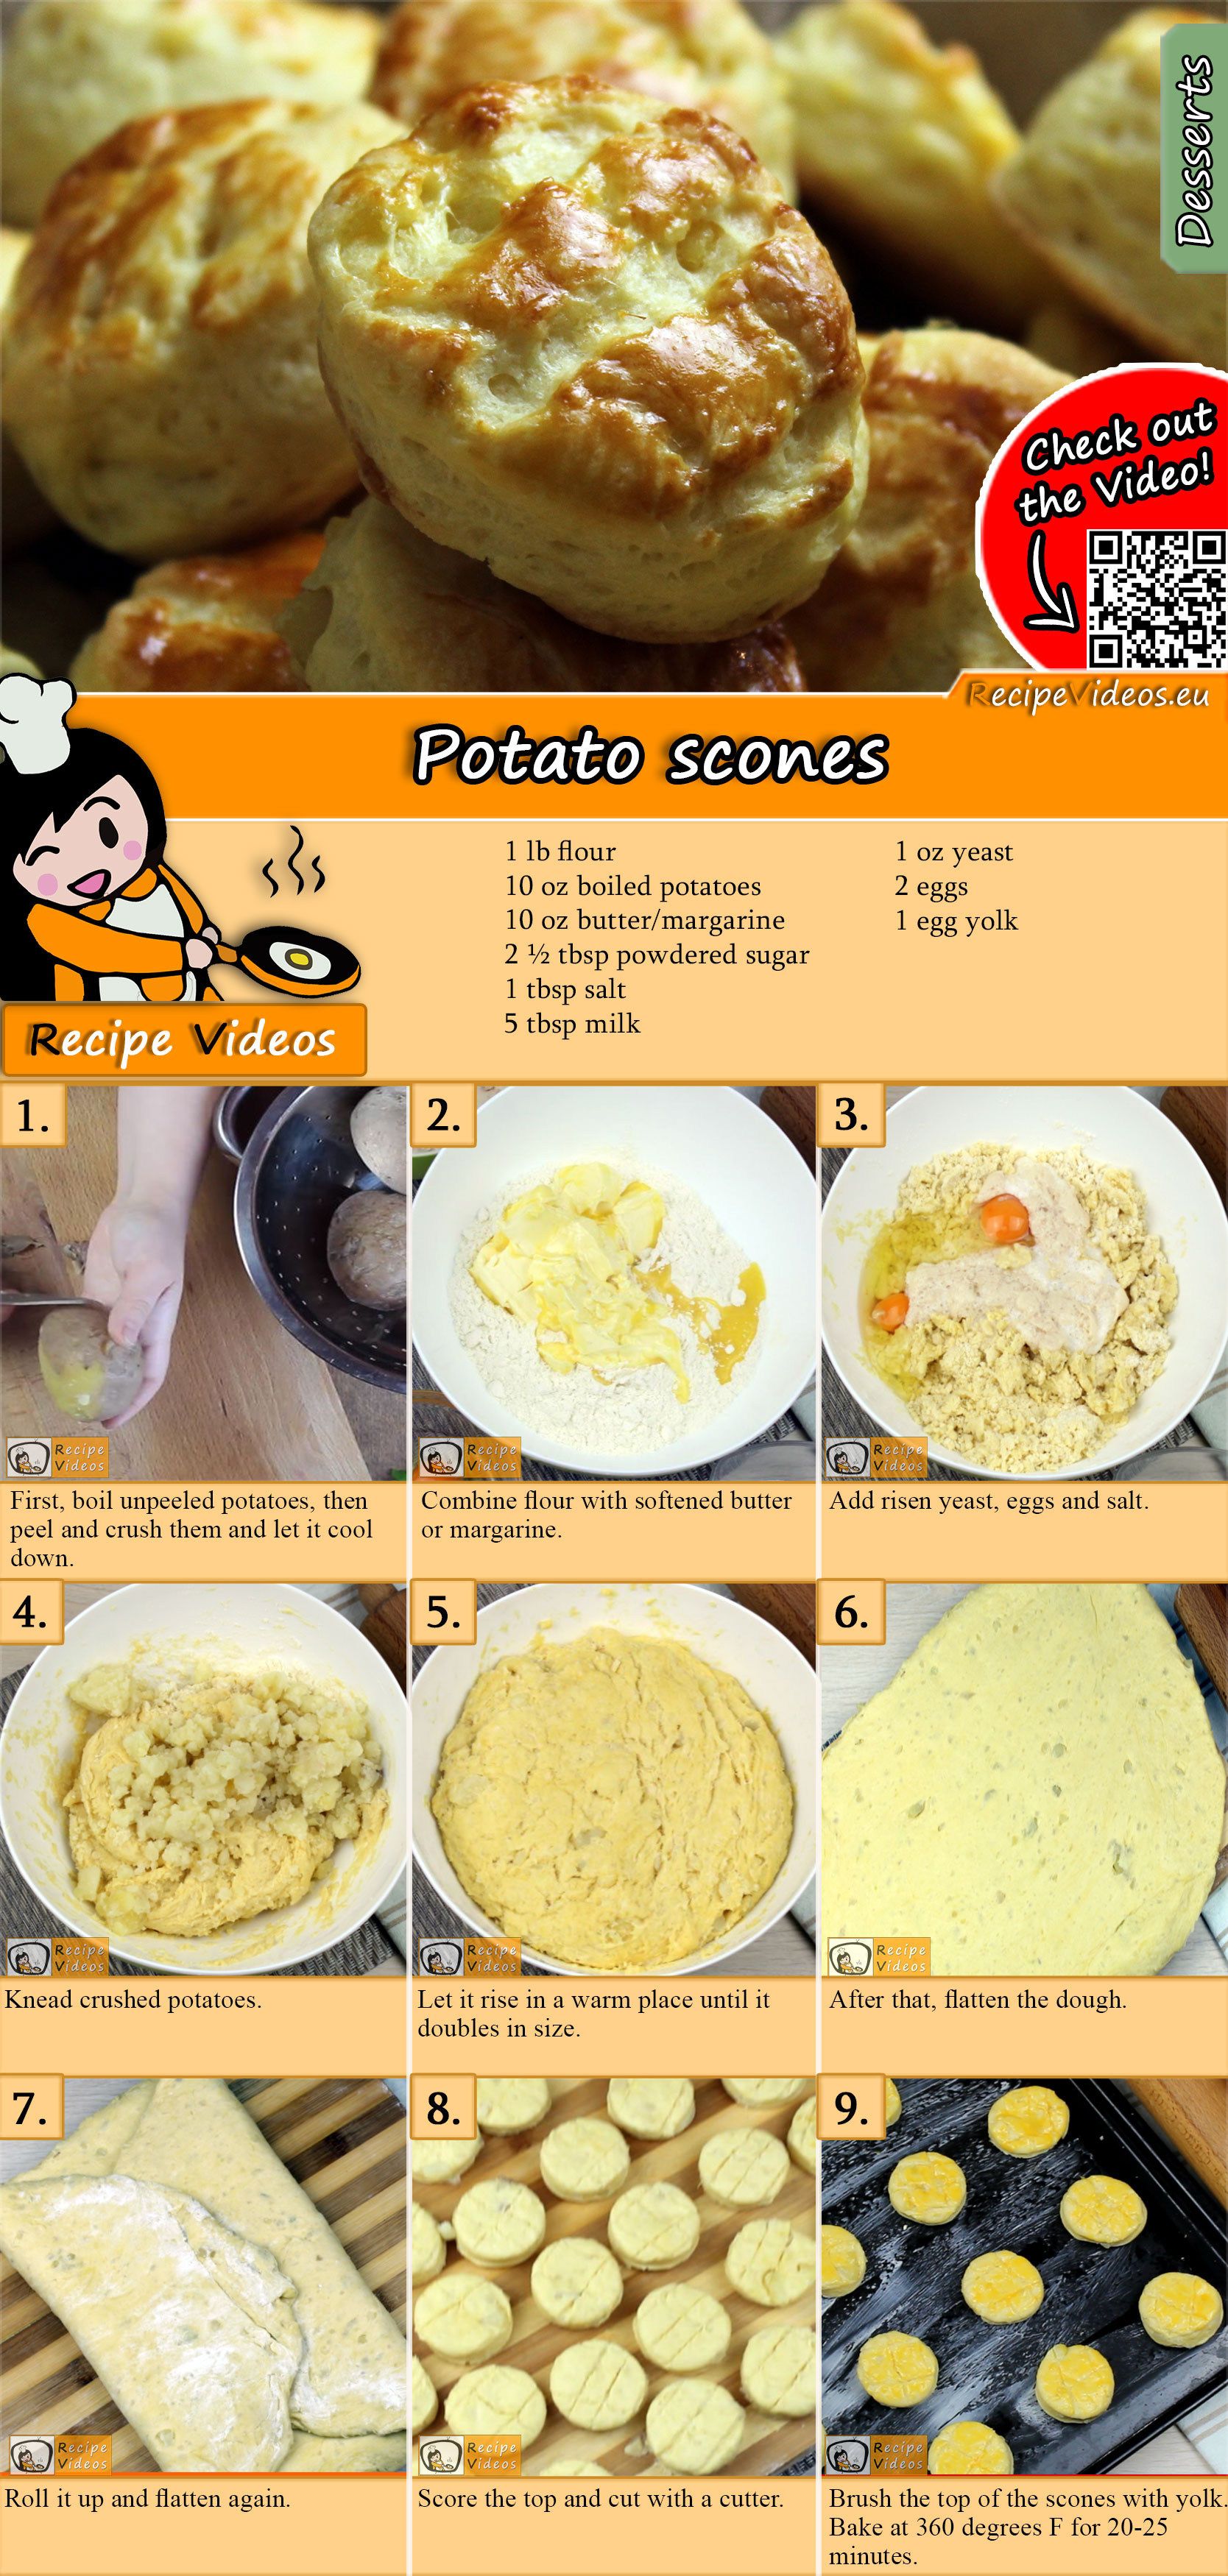 Potato scones recipe with video